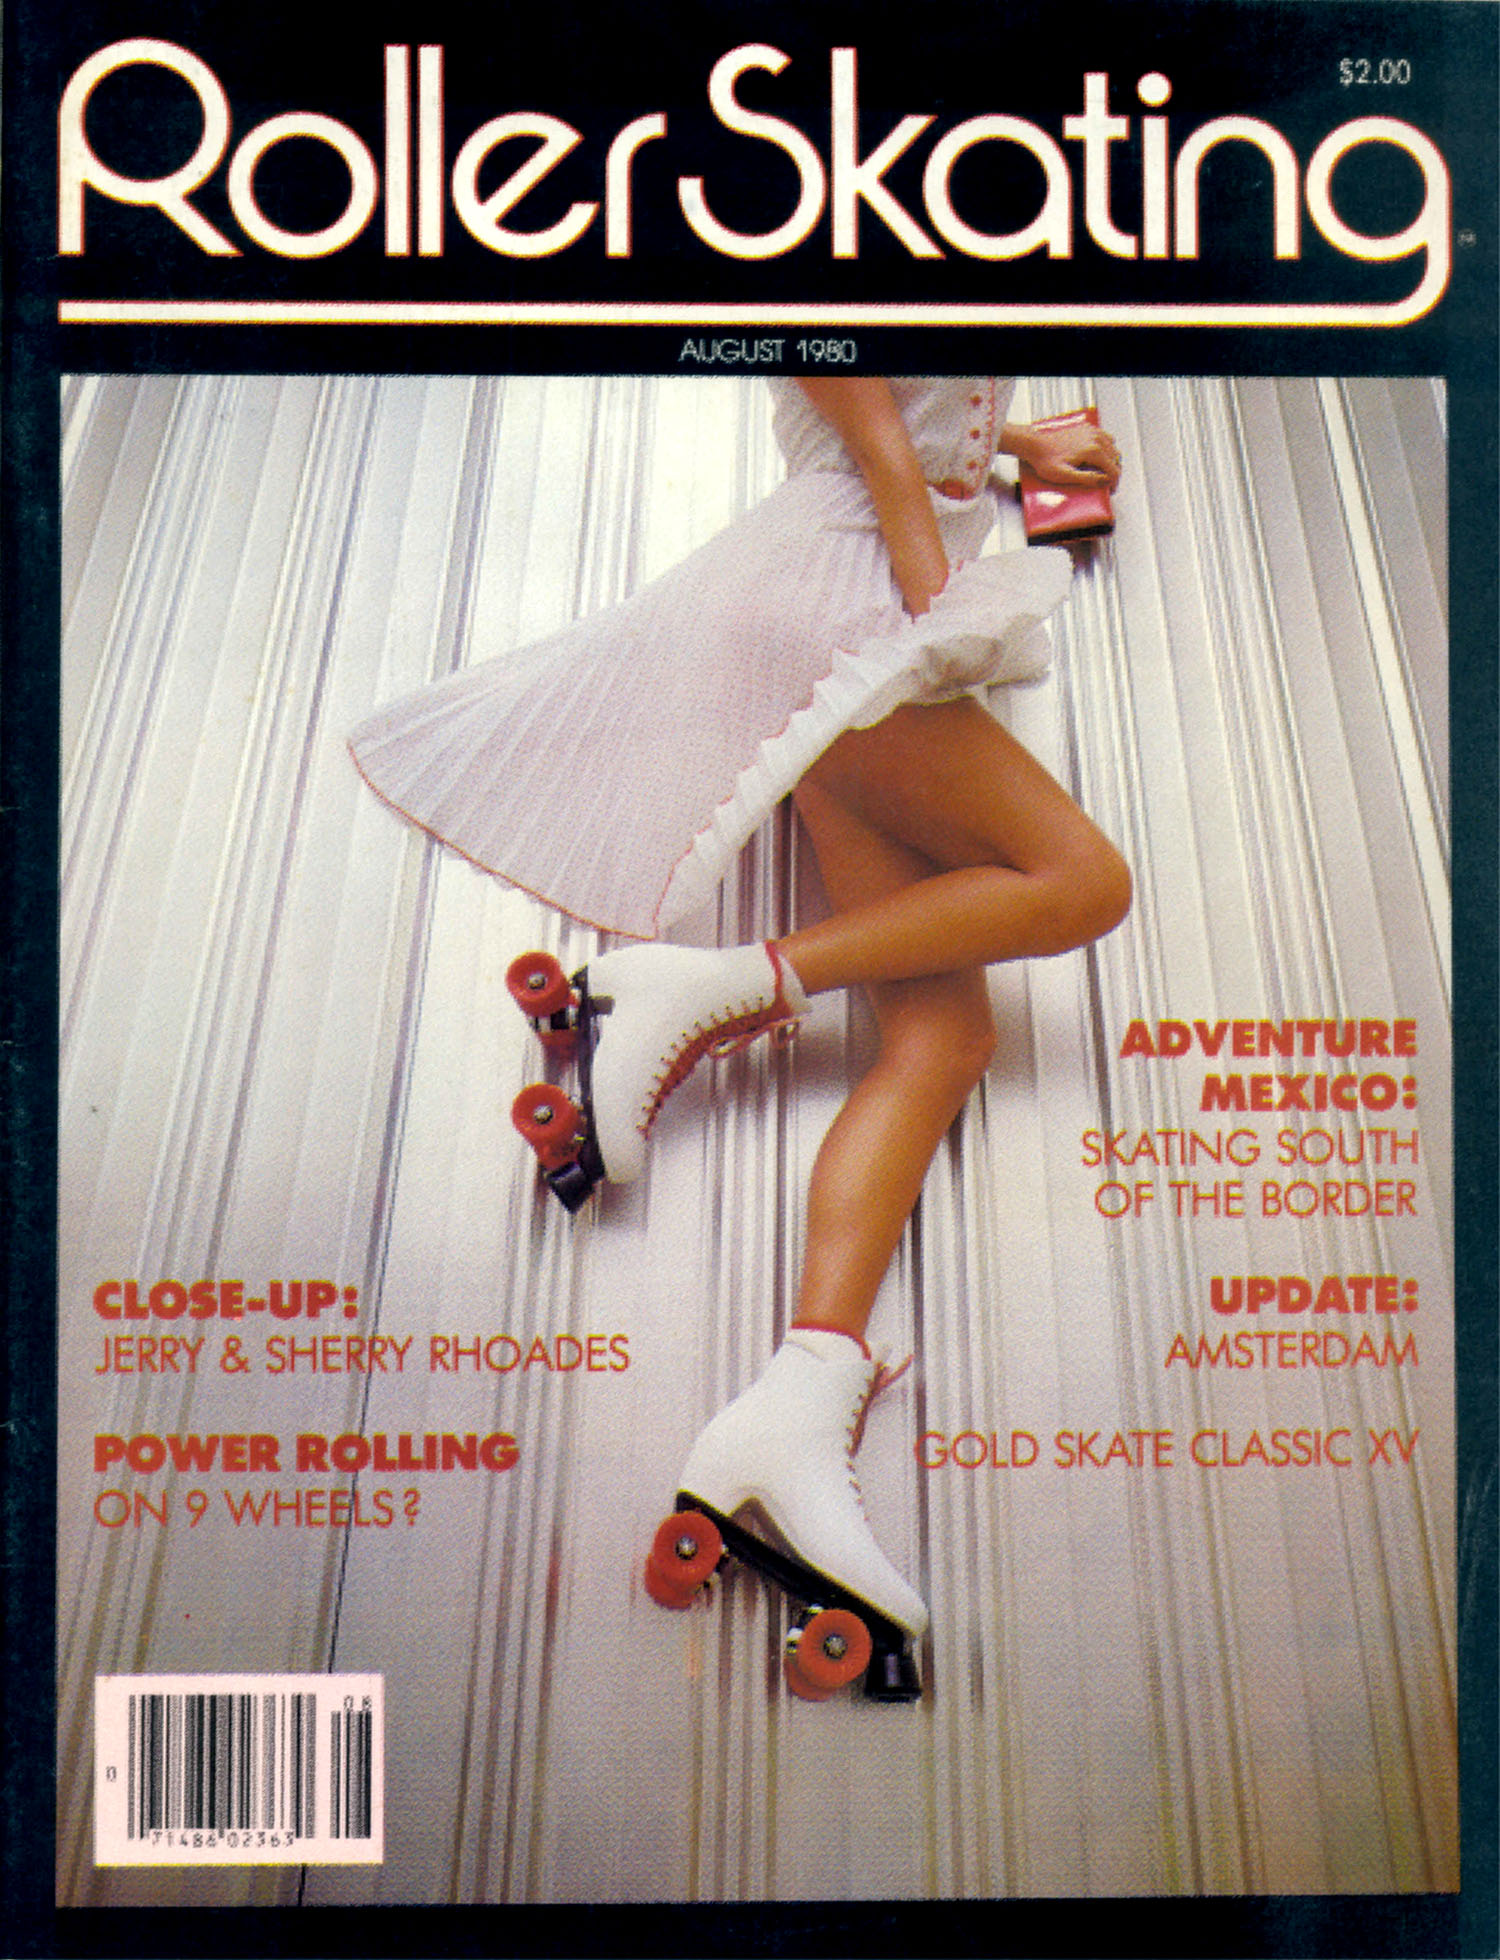 roller skating magazine cover (1)